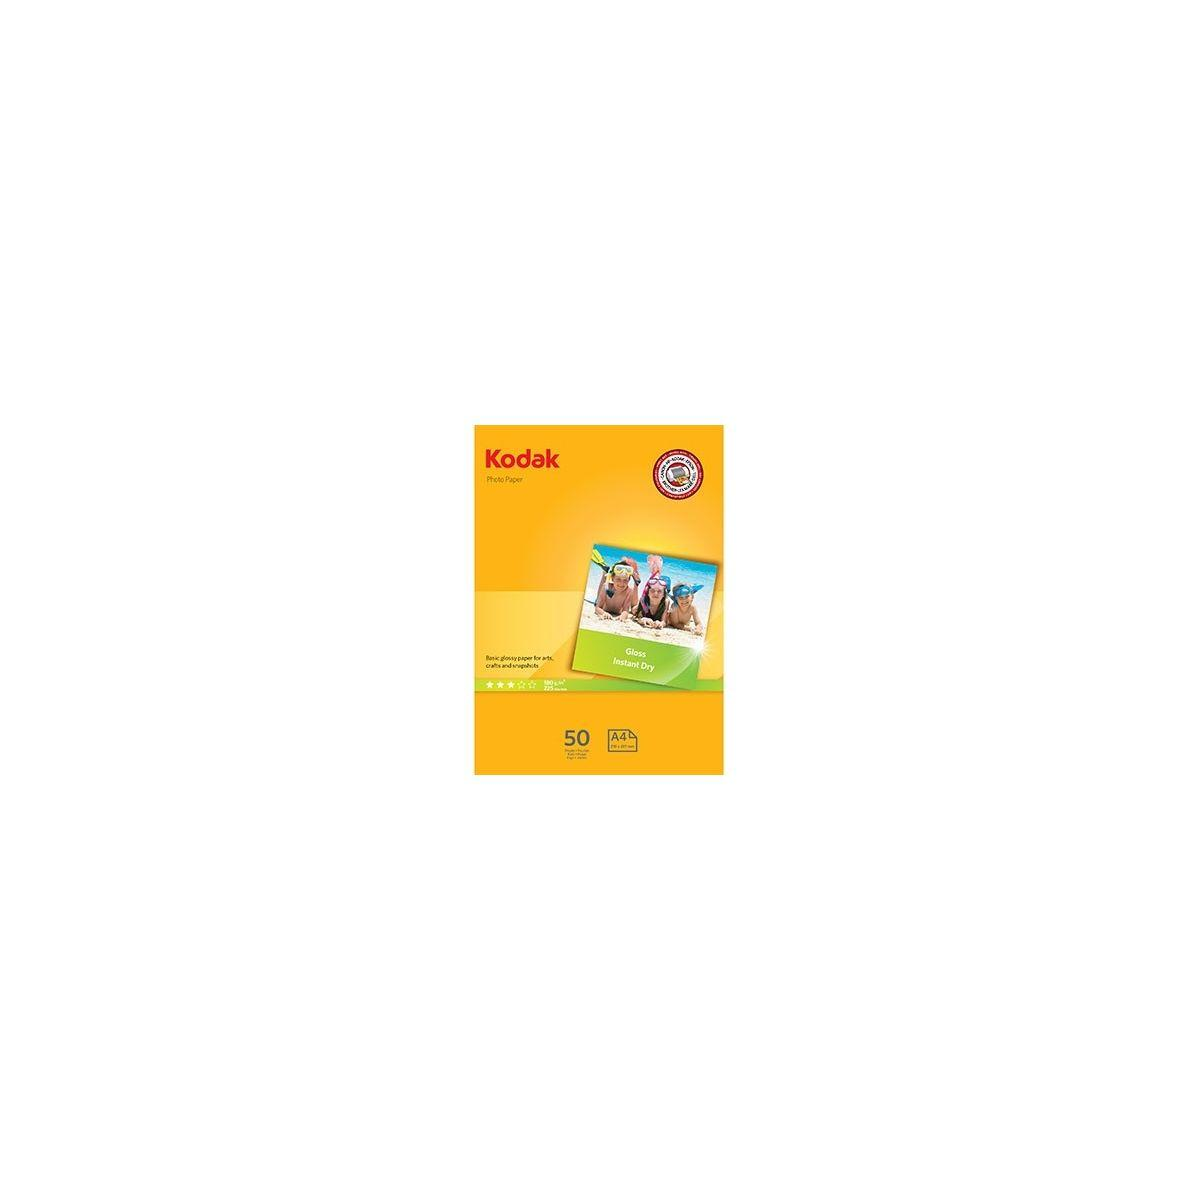 Papier photo kodak photo gloss ultra premium 180g a4 50f - 2% de remise imm�diate avec l